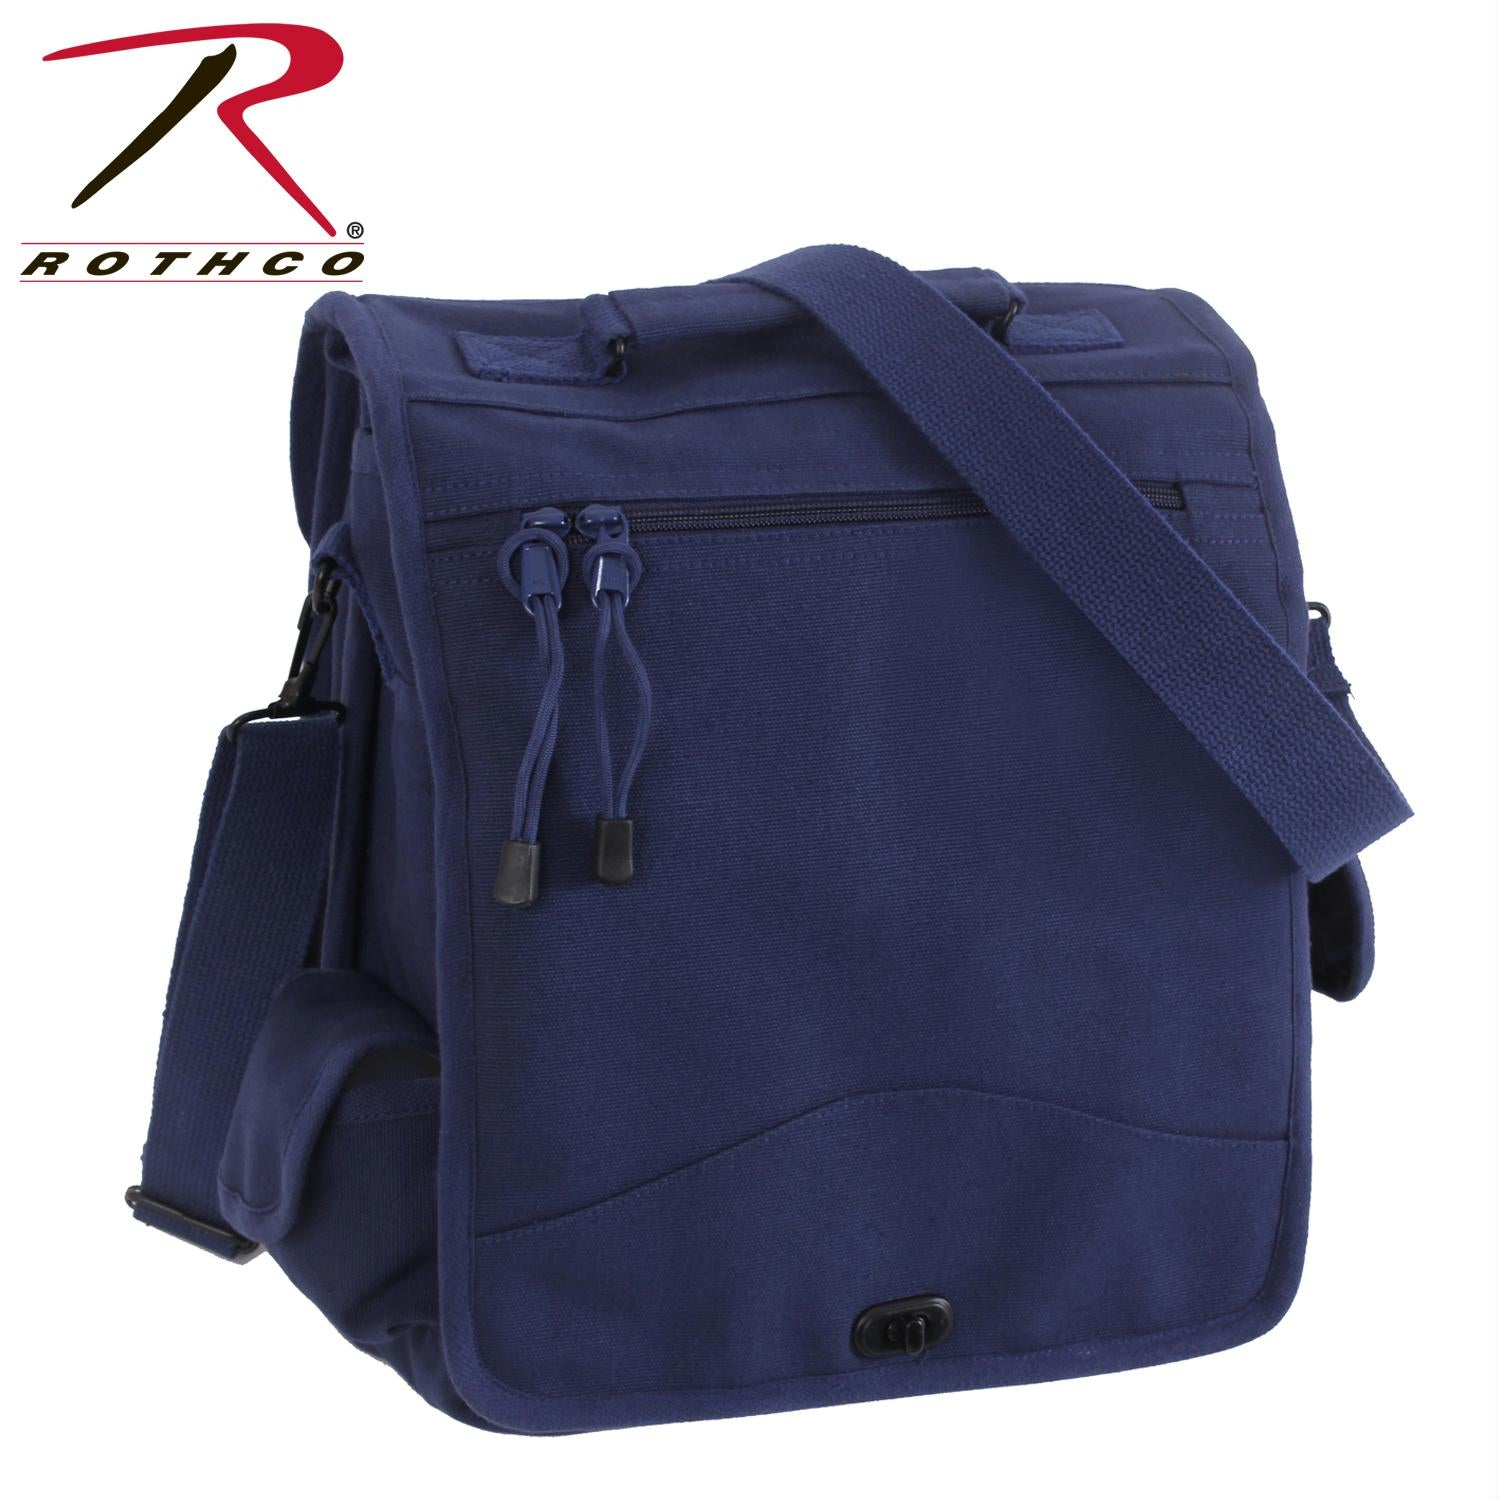 Rothco Canvas M-51 Engineers Field Bag - Navy Blue